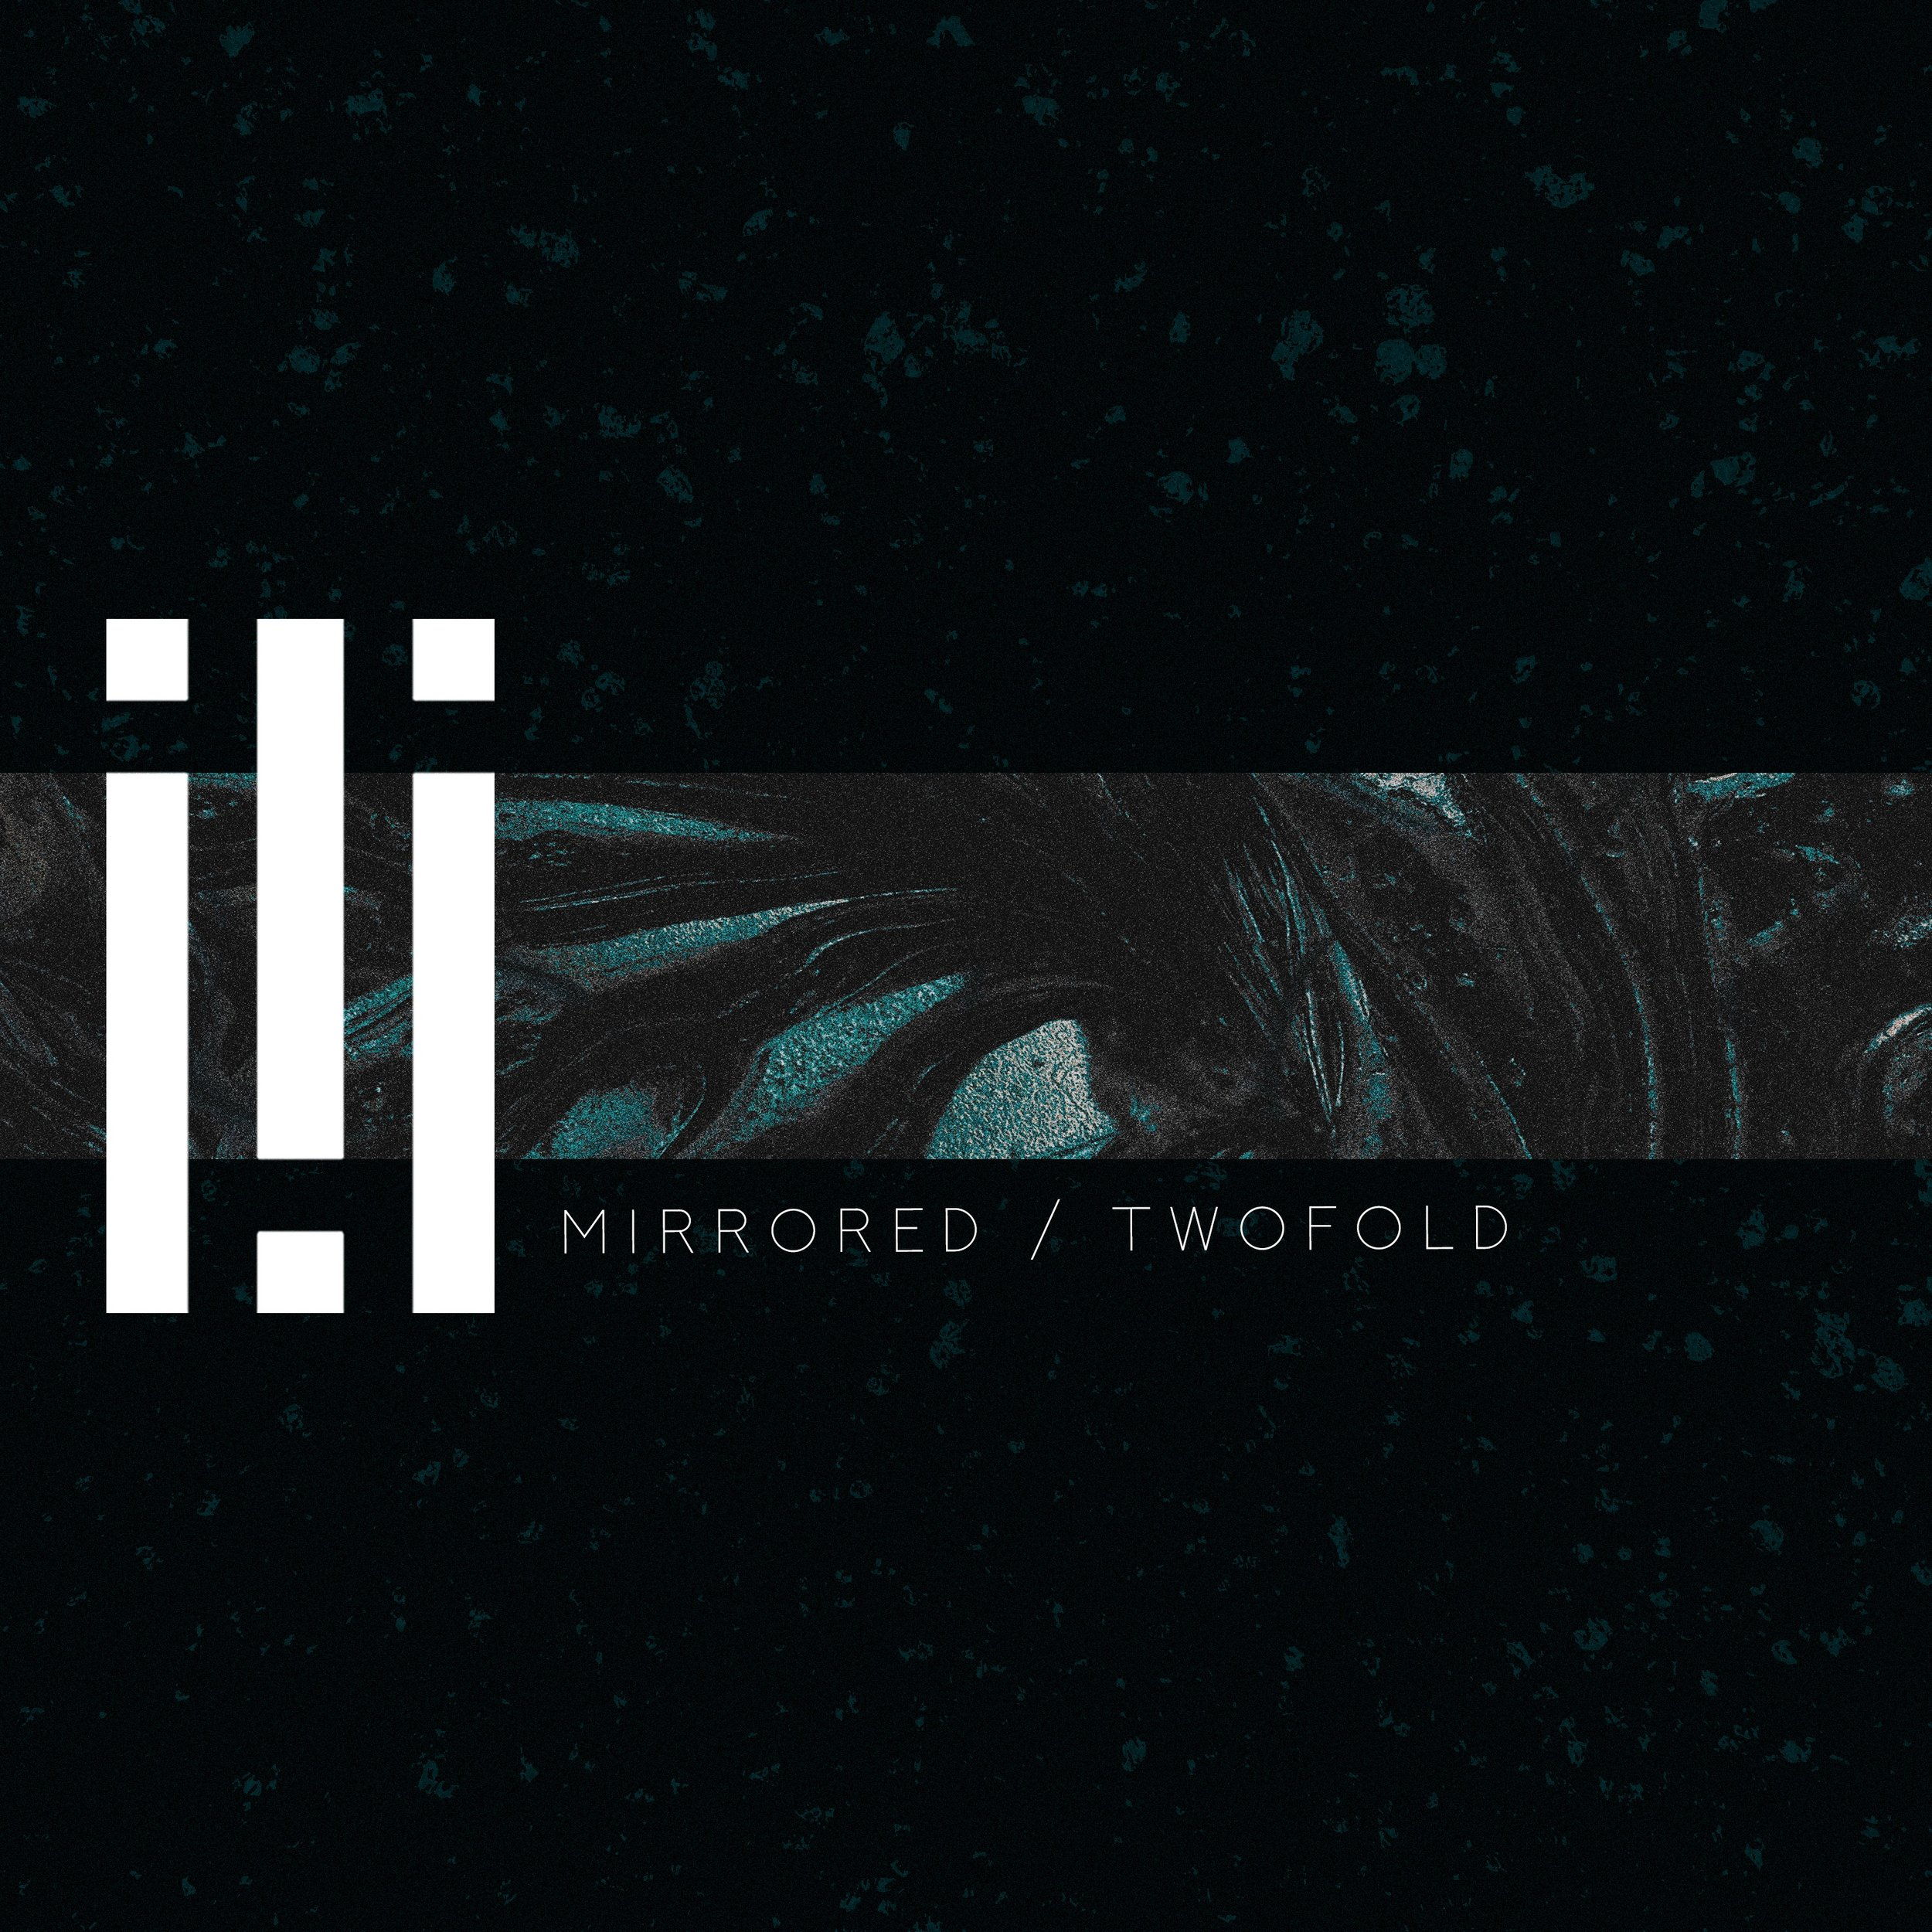 InsideInfo - Mirrored / Twofold